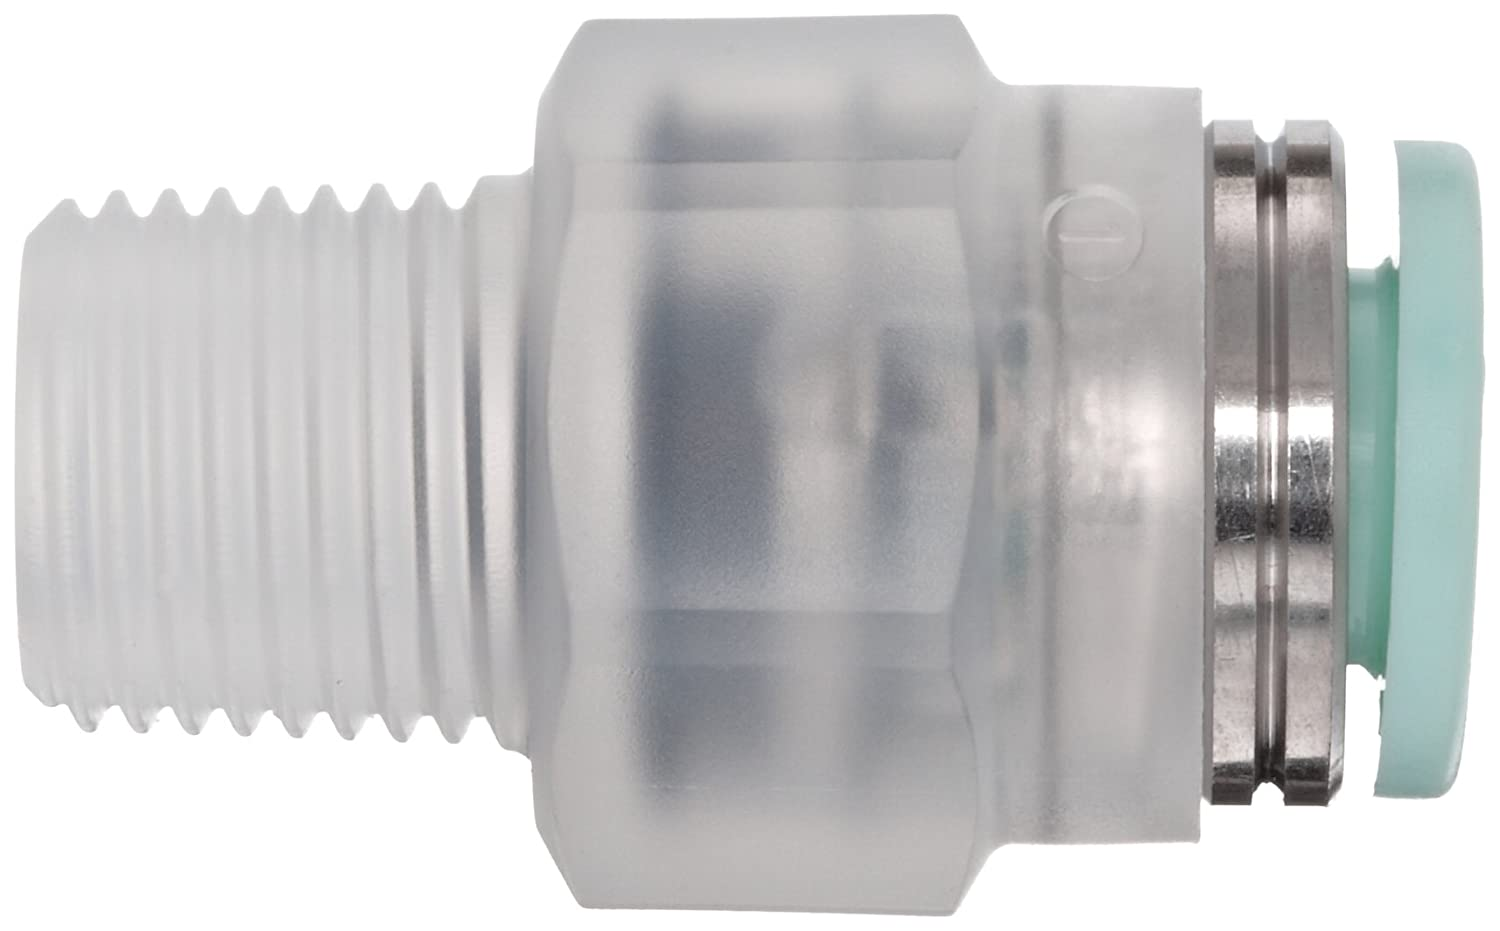 6mm Tube OD x 1//4 BSPT Male 6mm Tube OD x 1//4 BSPT Male SMC Corporation of America KPH06-02 Straight Union SMC KP Series Polypropylene Clean Push-to-Connect Tube Fitting